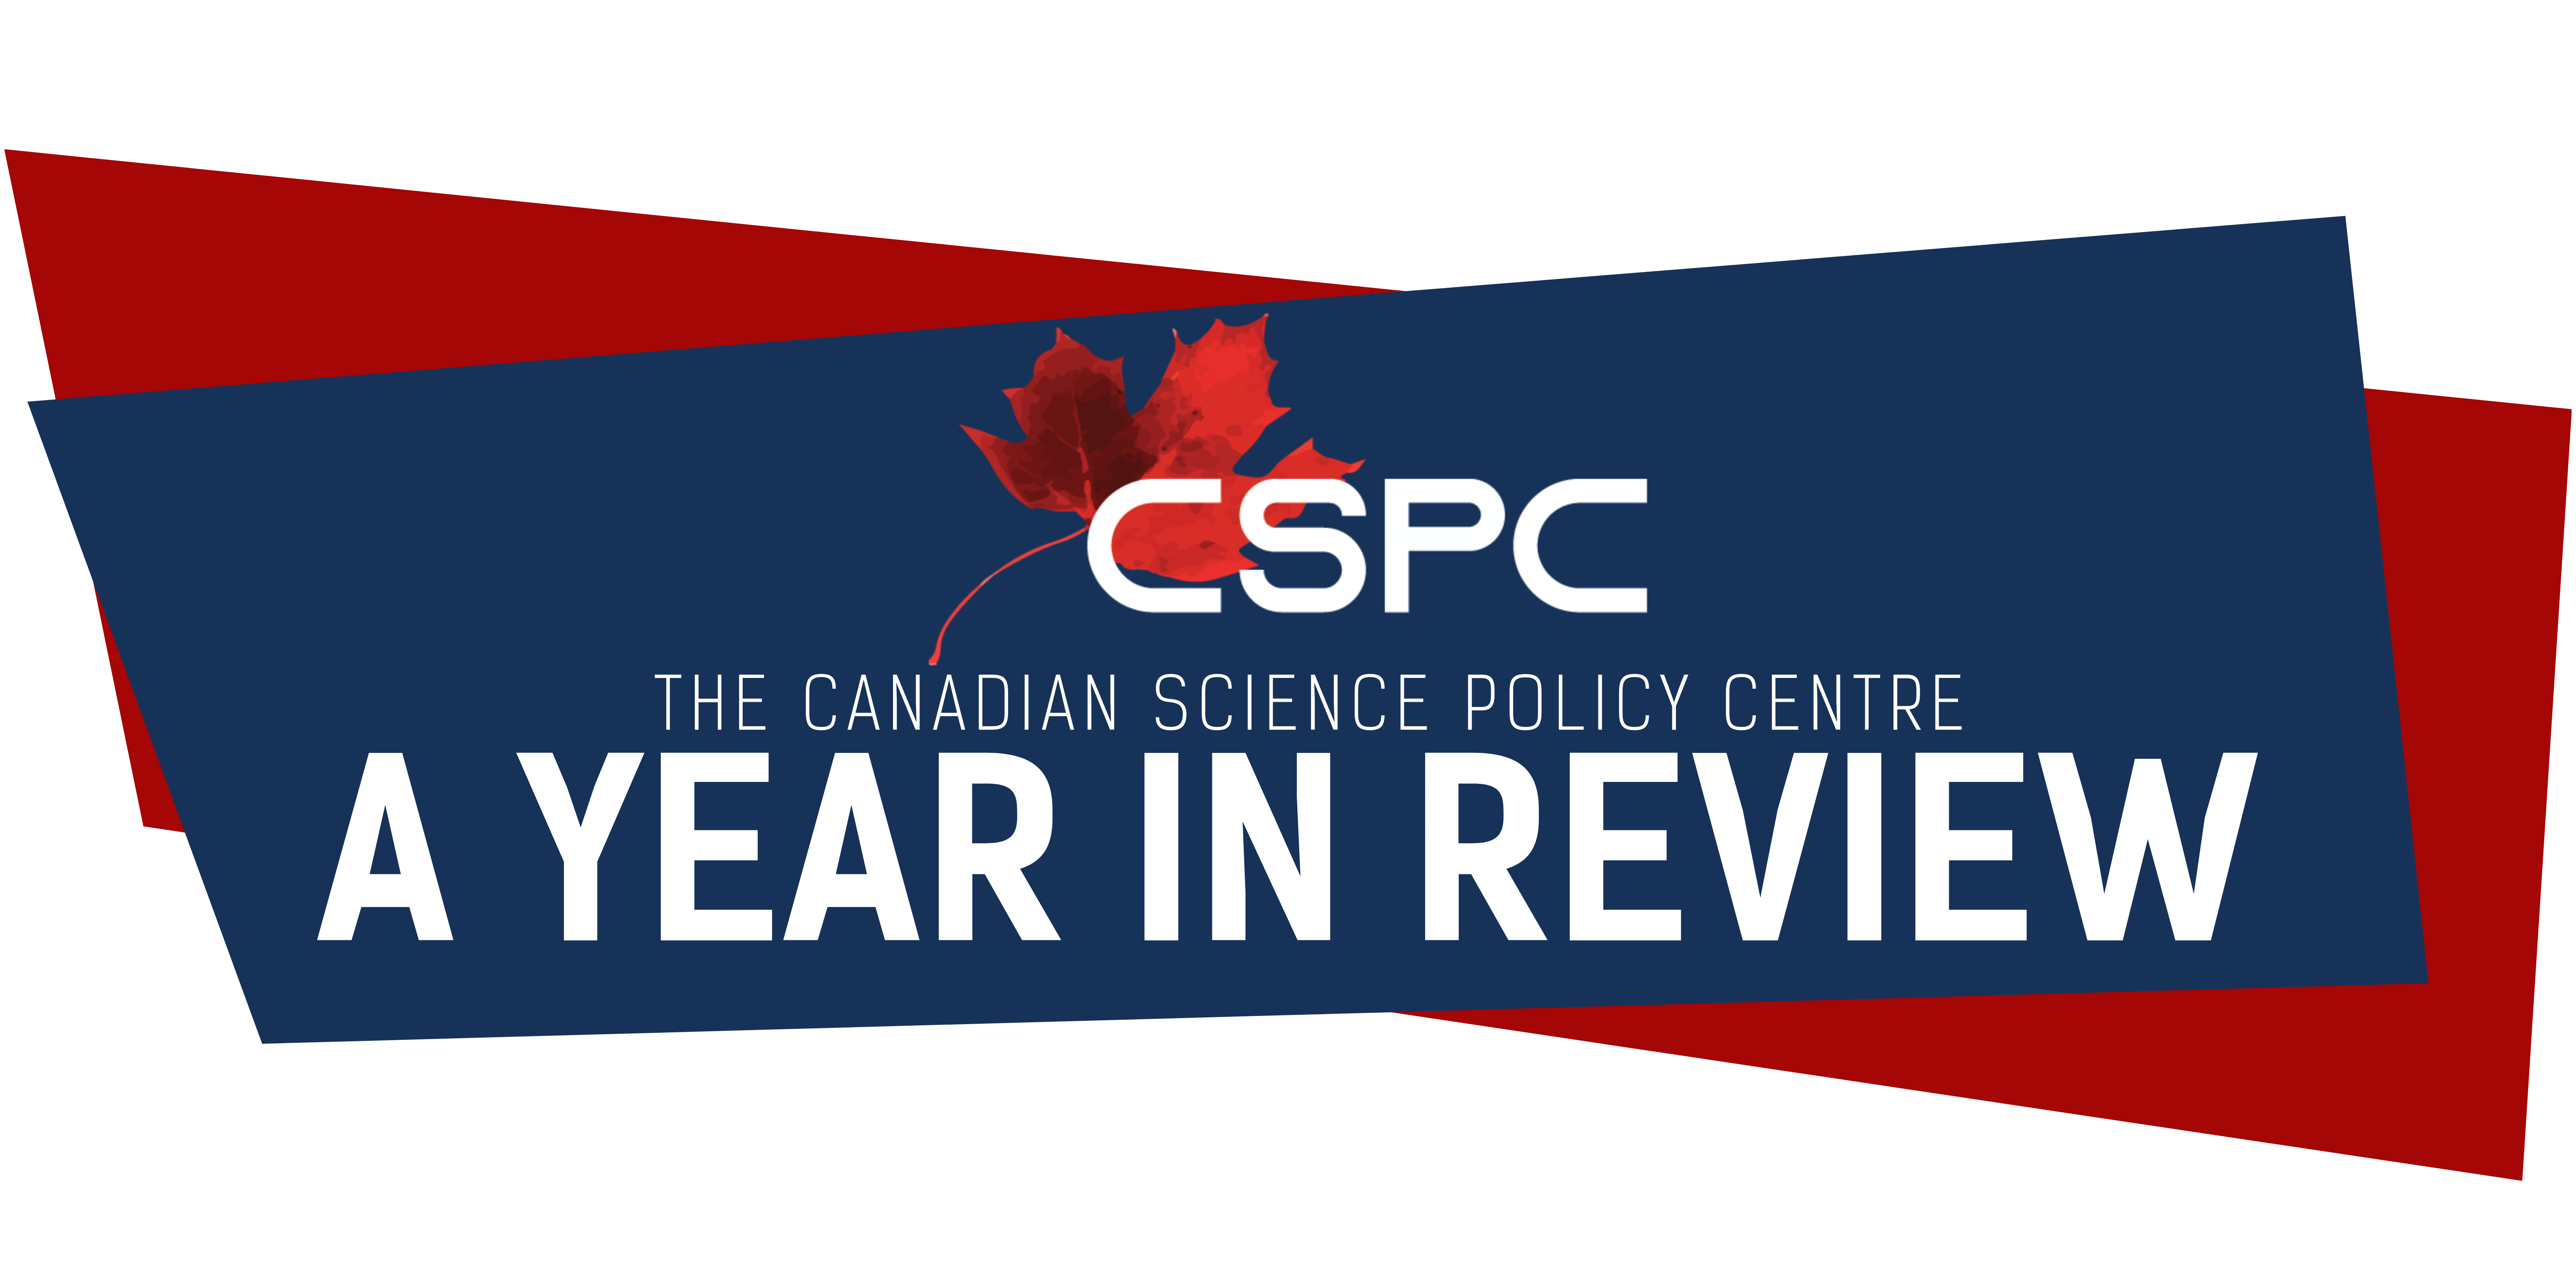 The Canadian Science Policy Center, a Year in Review